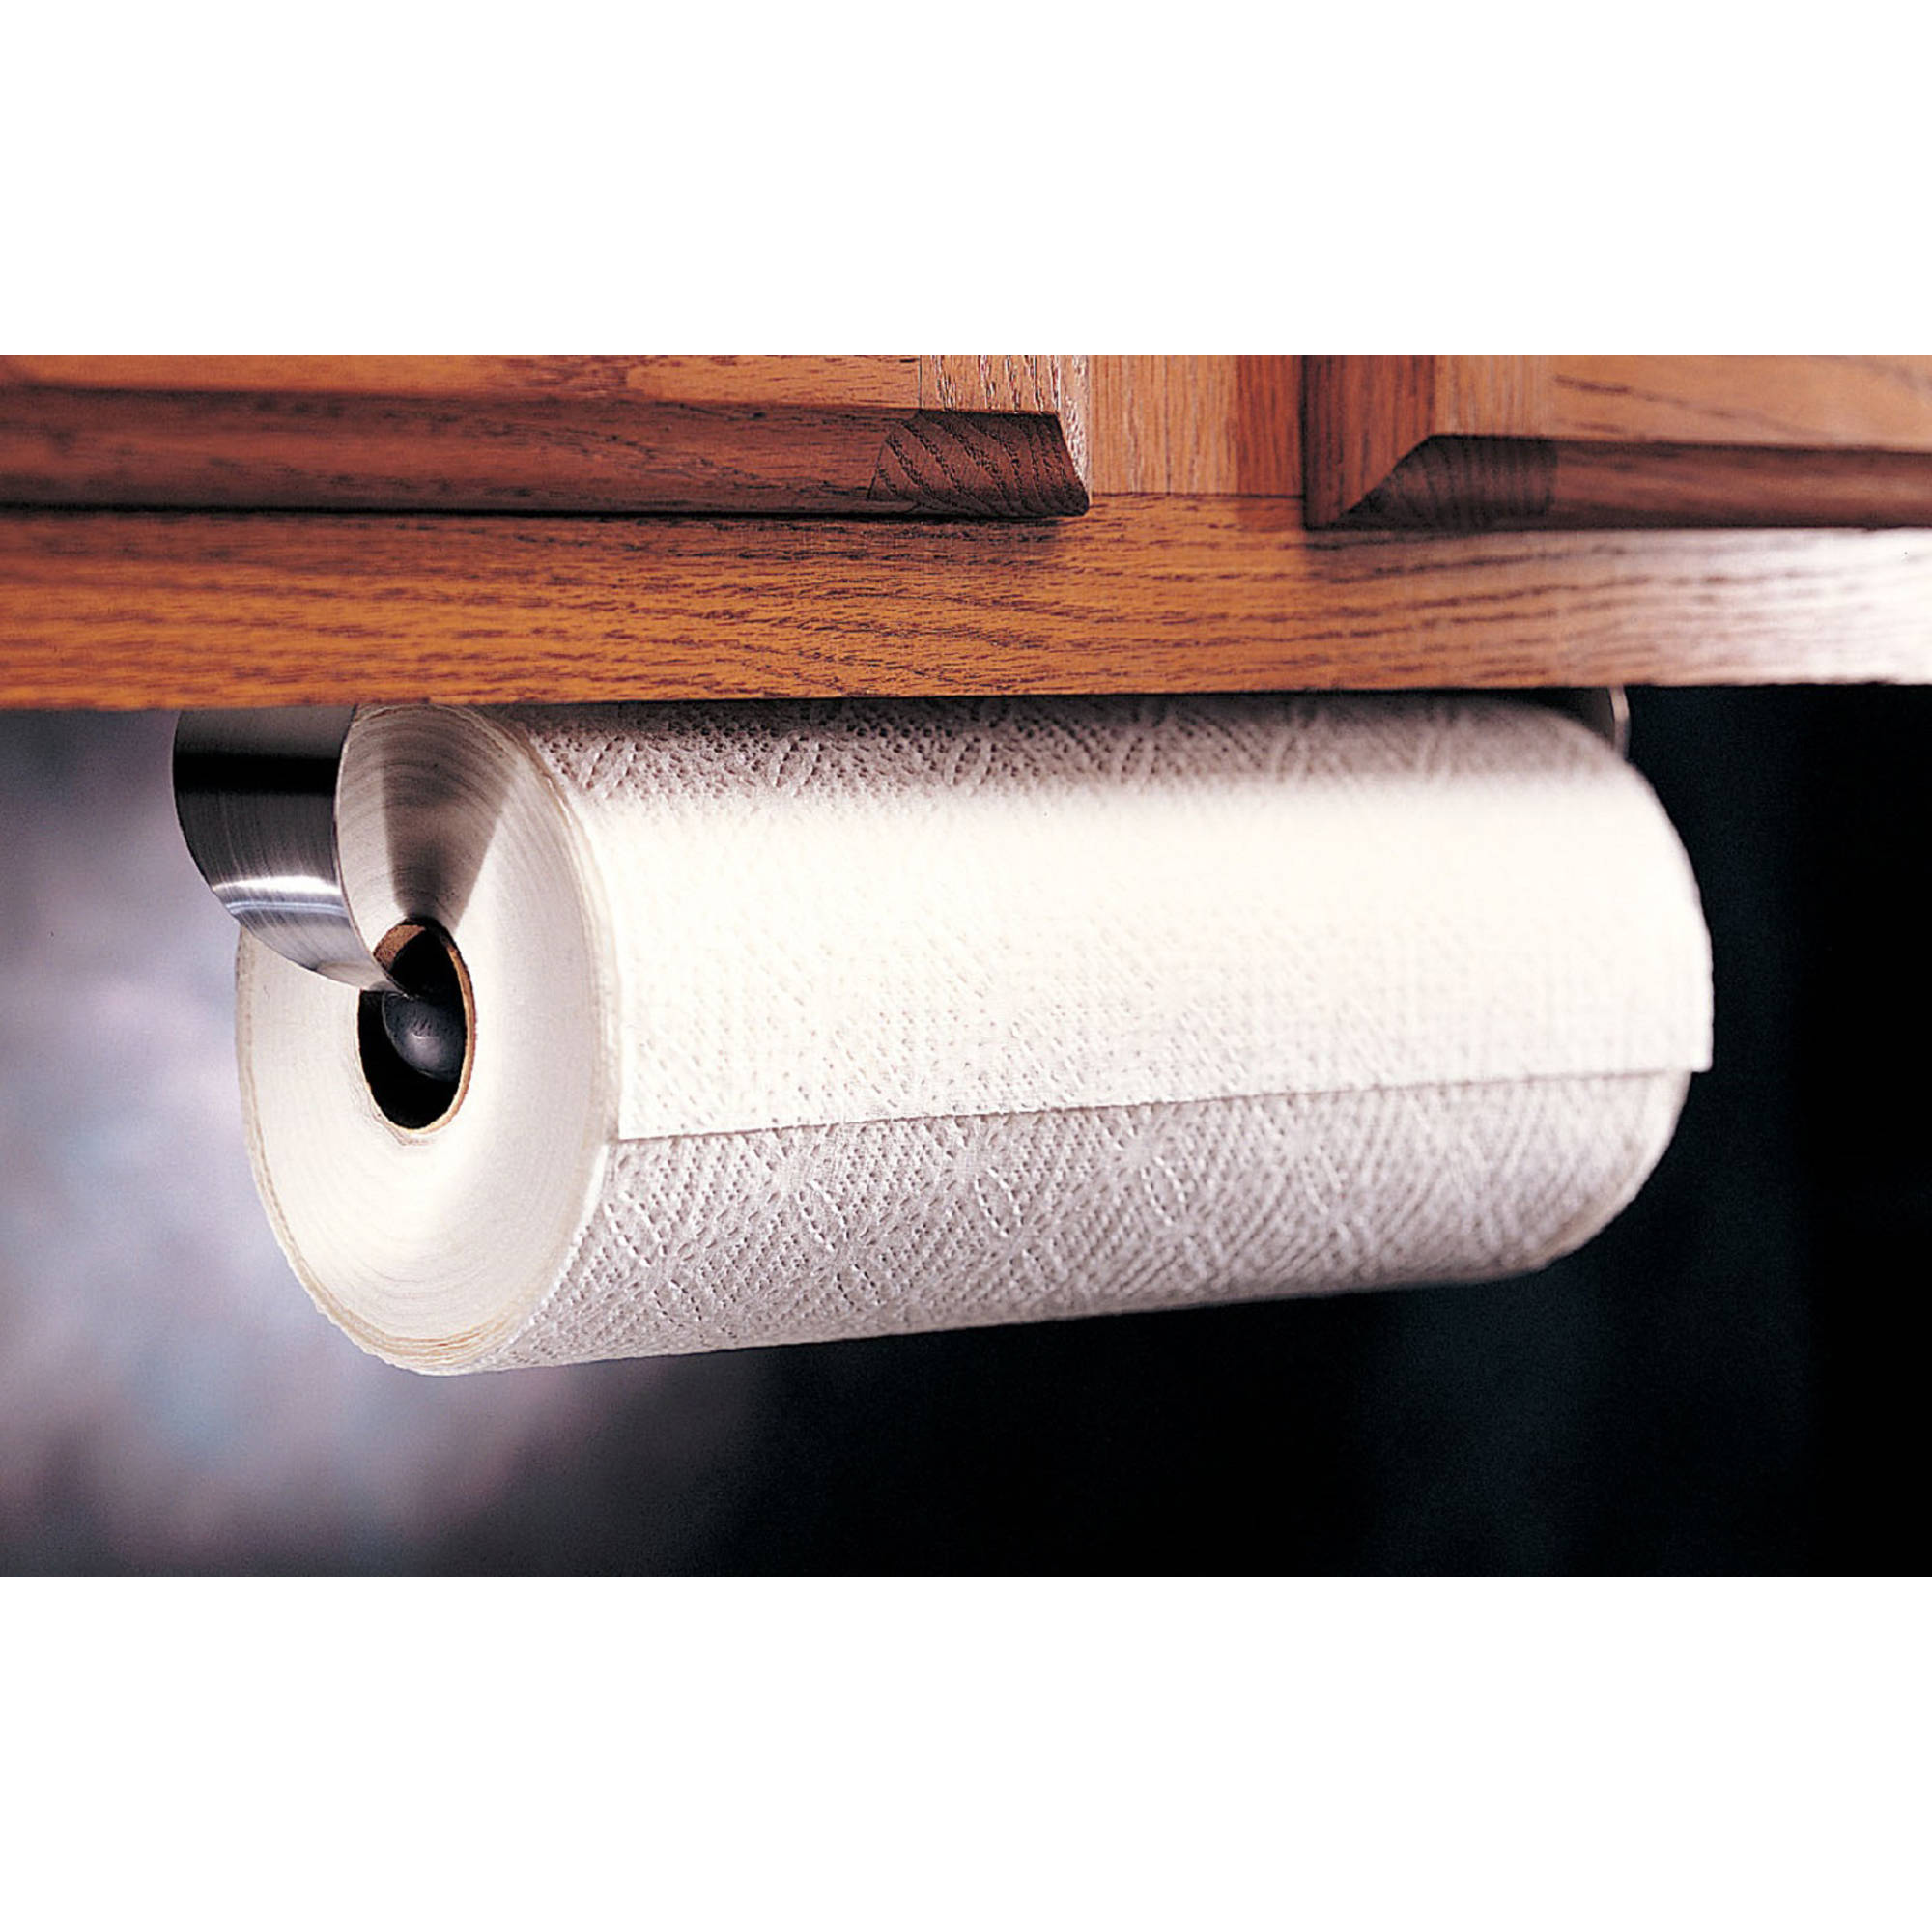 Prodyne Stainless Steel Under Cabinet Paper Towel Holder Walmartcom